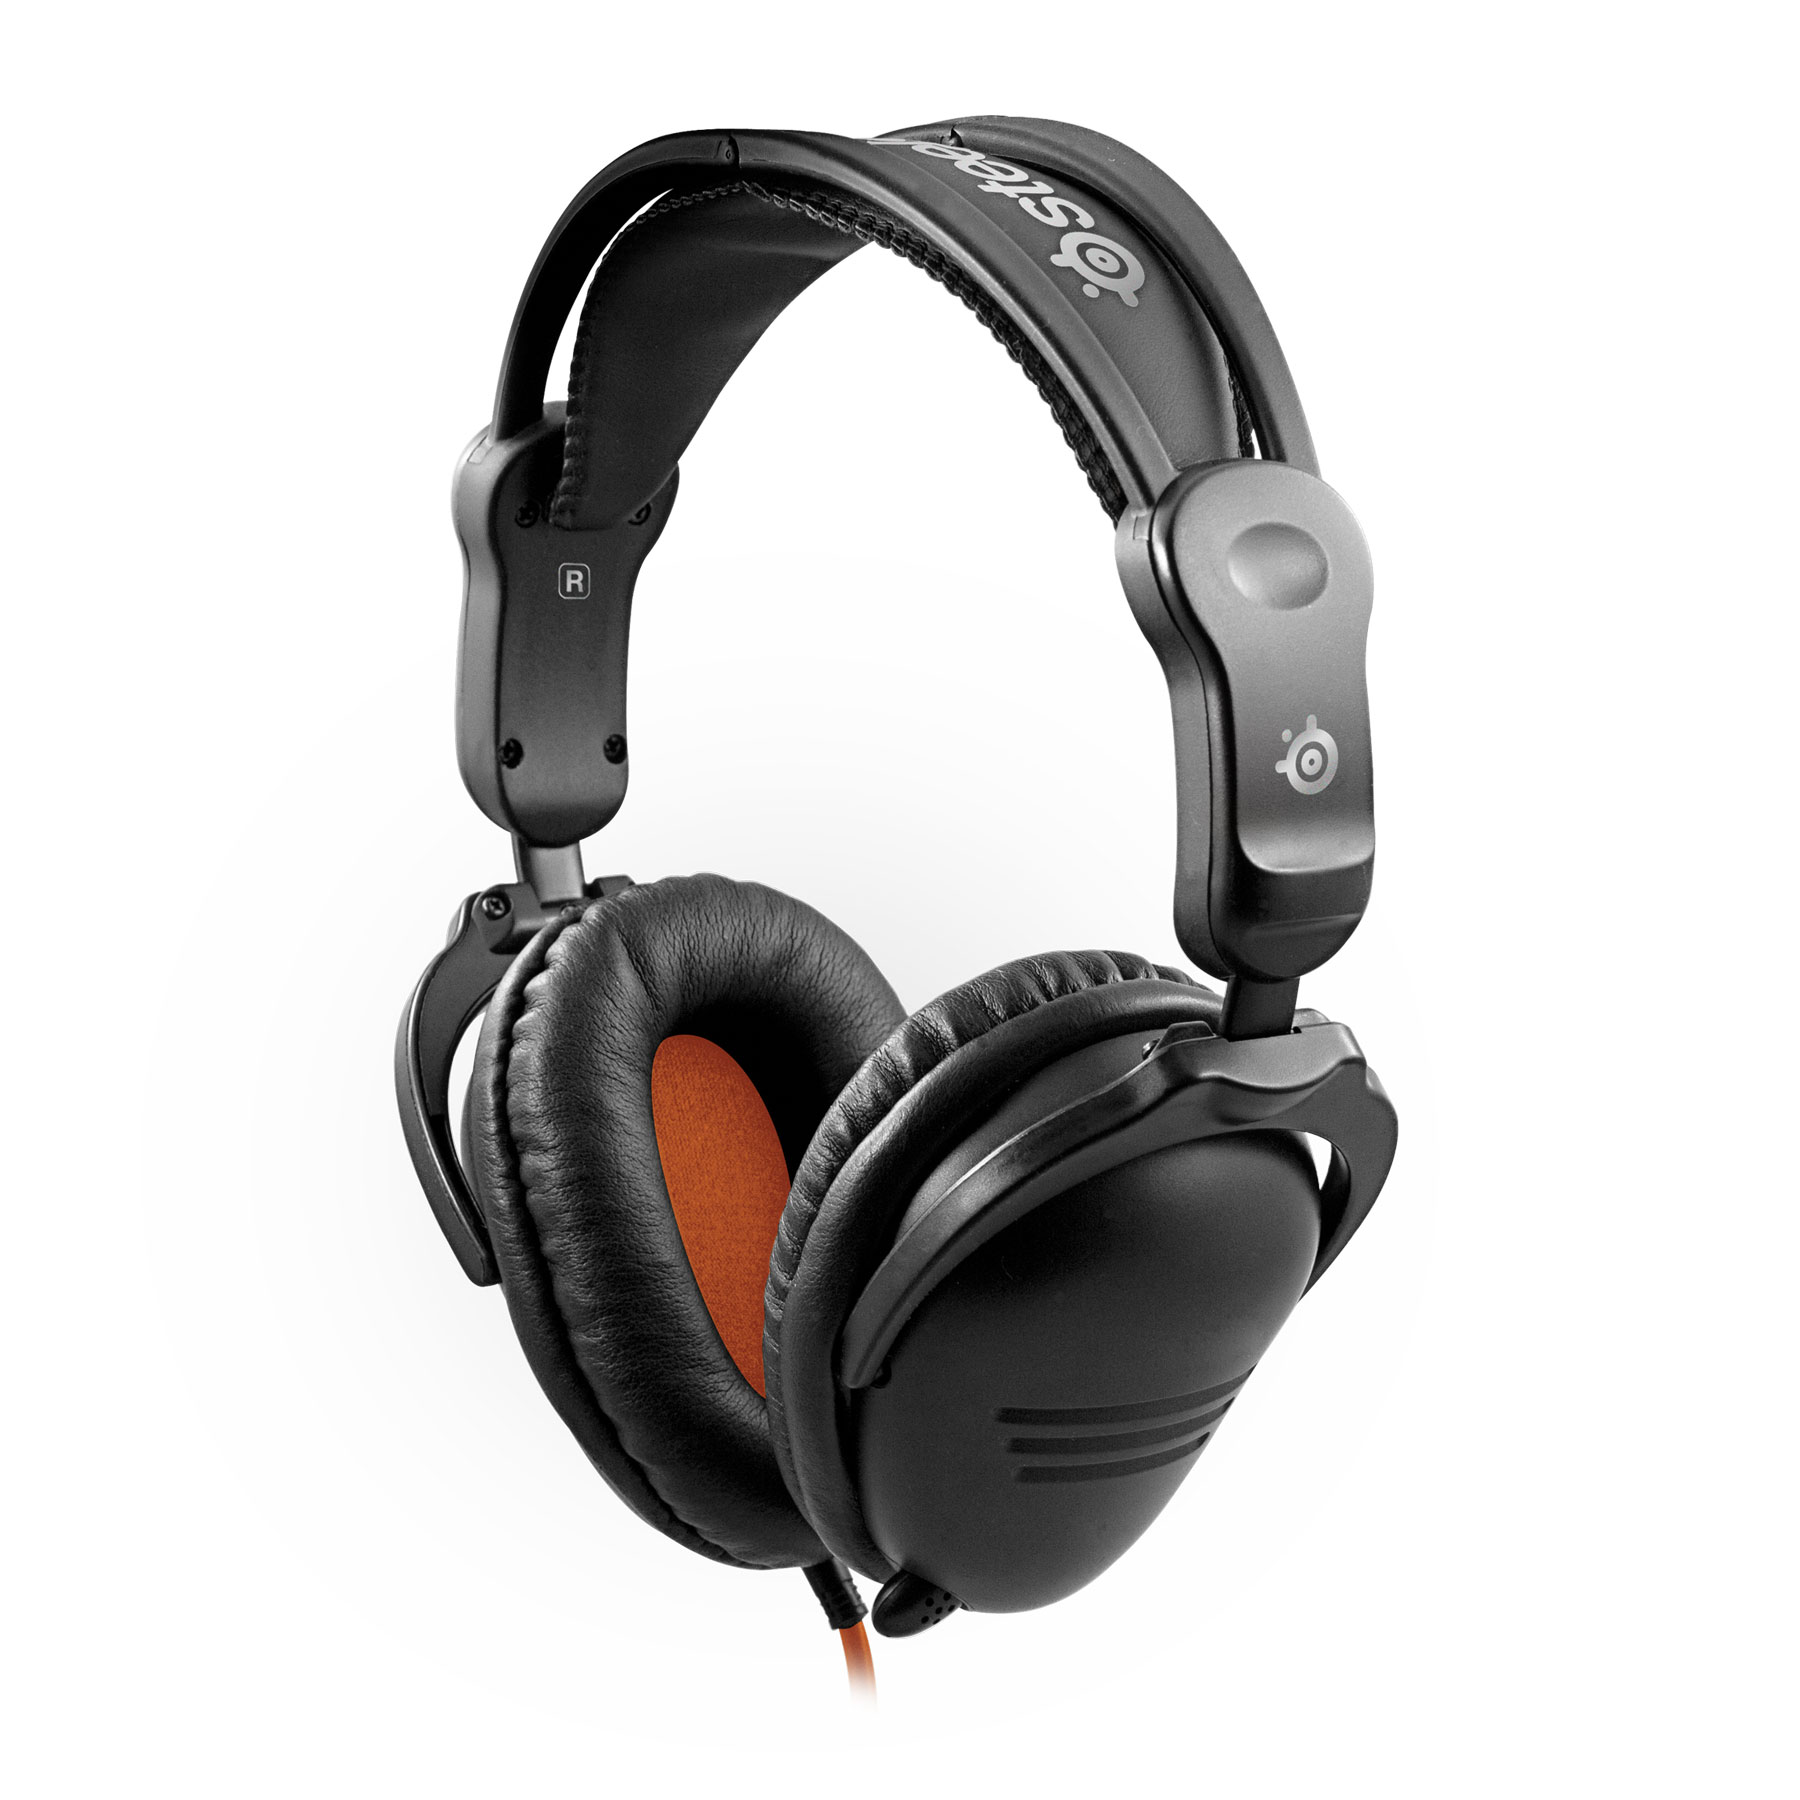 steelseries 3hv2 micro casque steelseries sur. Black Bedroom Furniture Sets. Home Design Ideas